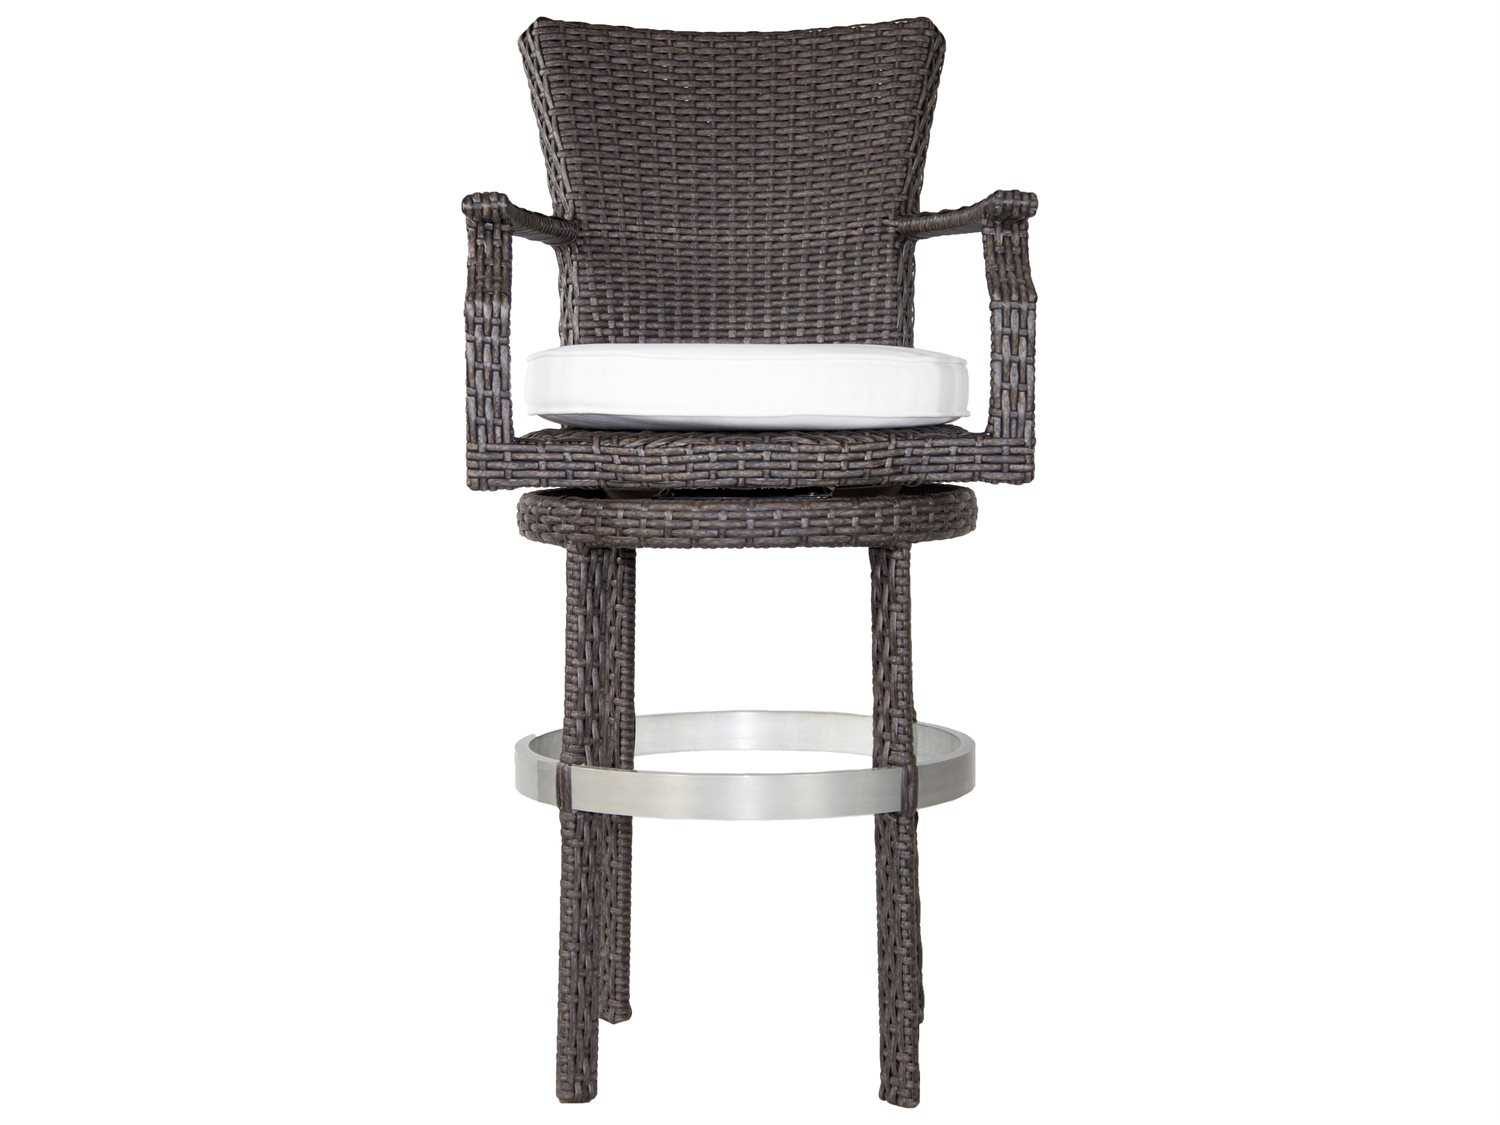 Patio Heaven Signature Wicker Swivel Round Barstool with  : PAWPRBSBH1zm from www.patioliving.com size 1500 x 1125 jpeg 63kB